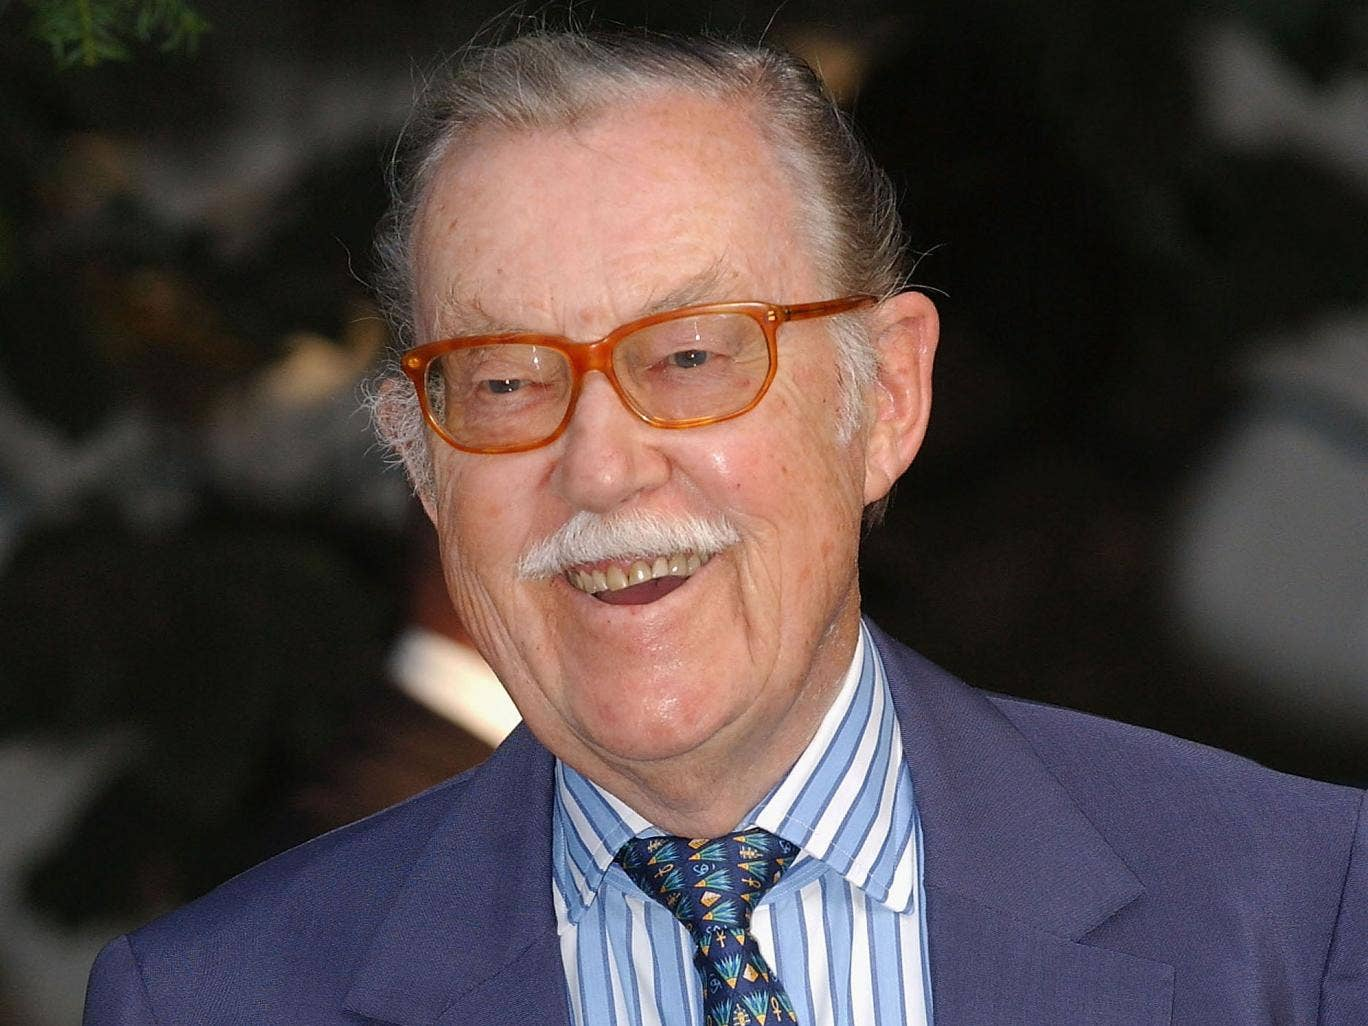 The broadcaster Alan Whicker has died, aged 87